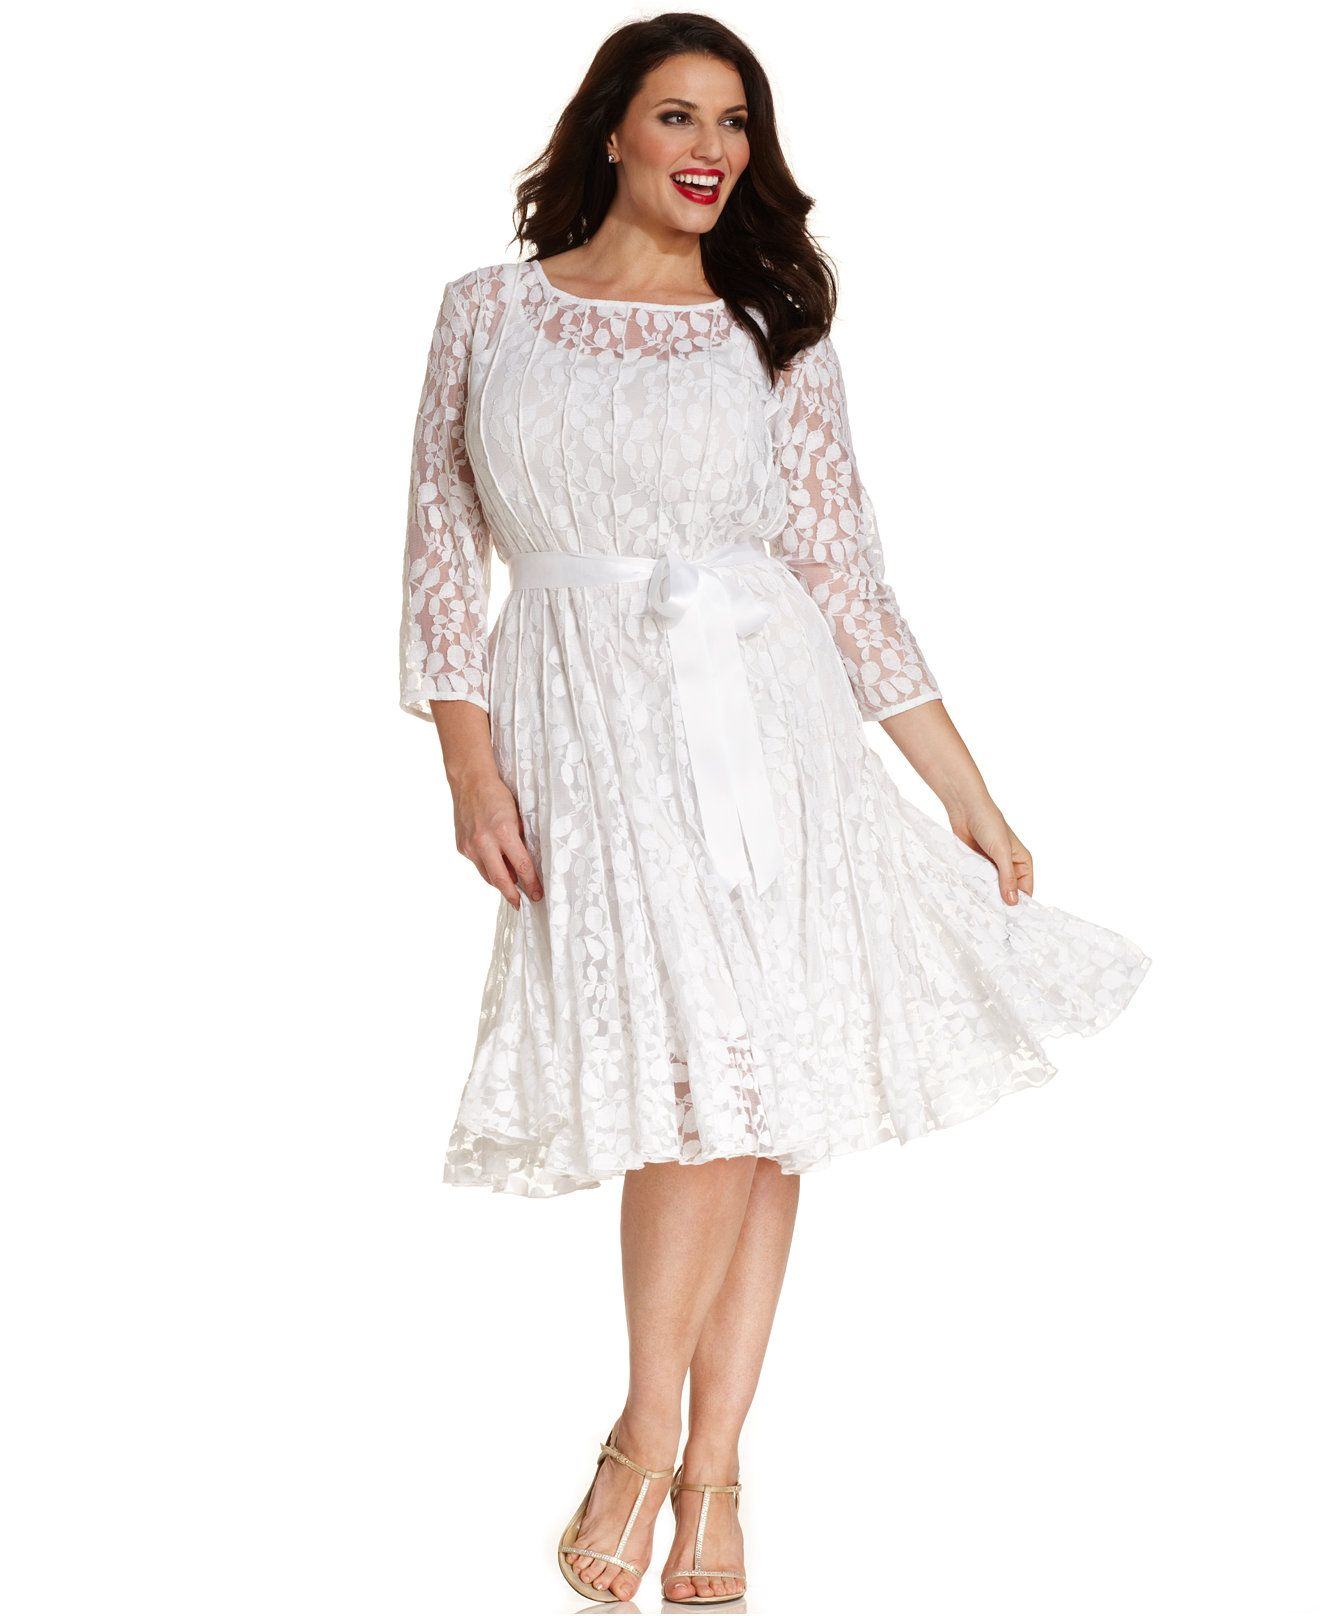 MSK Plus Size Illusion Floral Lace Dress - Dresses - Women ...